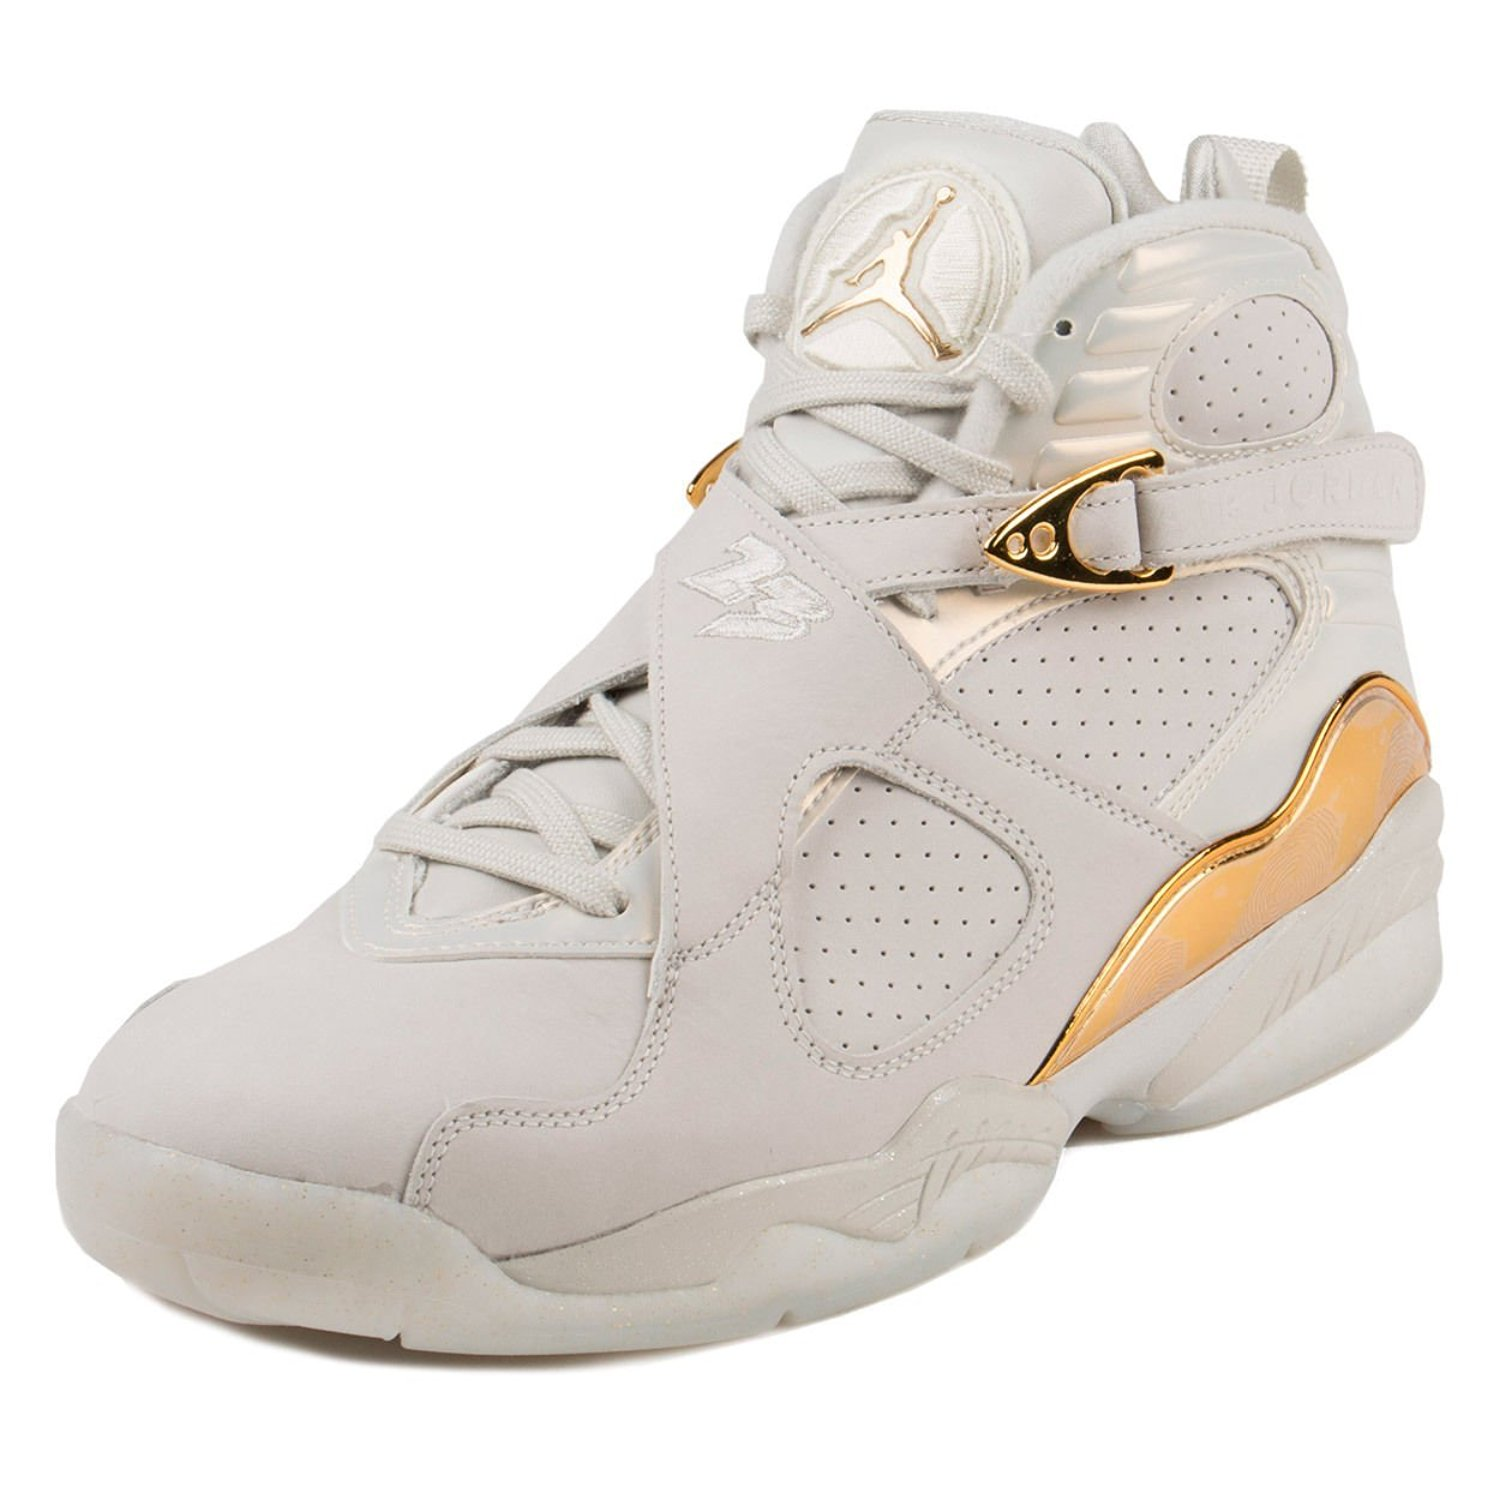 Nike Mens Air Jordan 8 Retro C&C Light Bone/Metallic Gold Leather